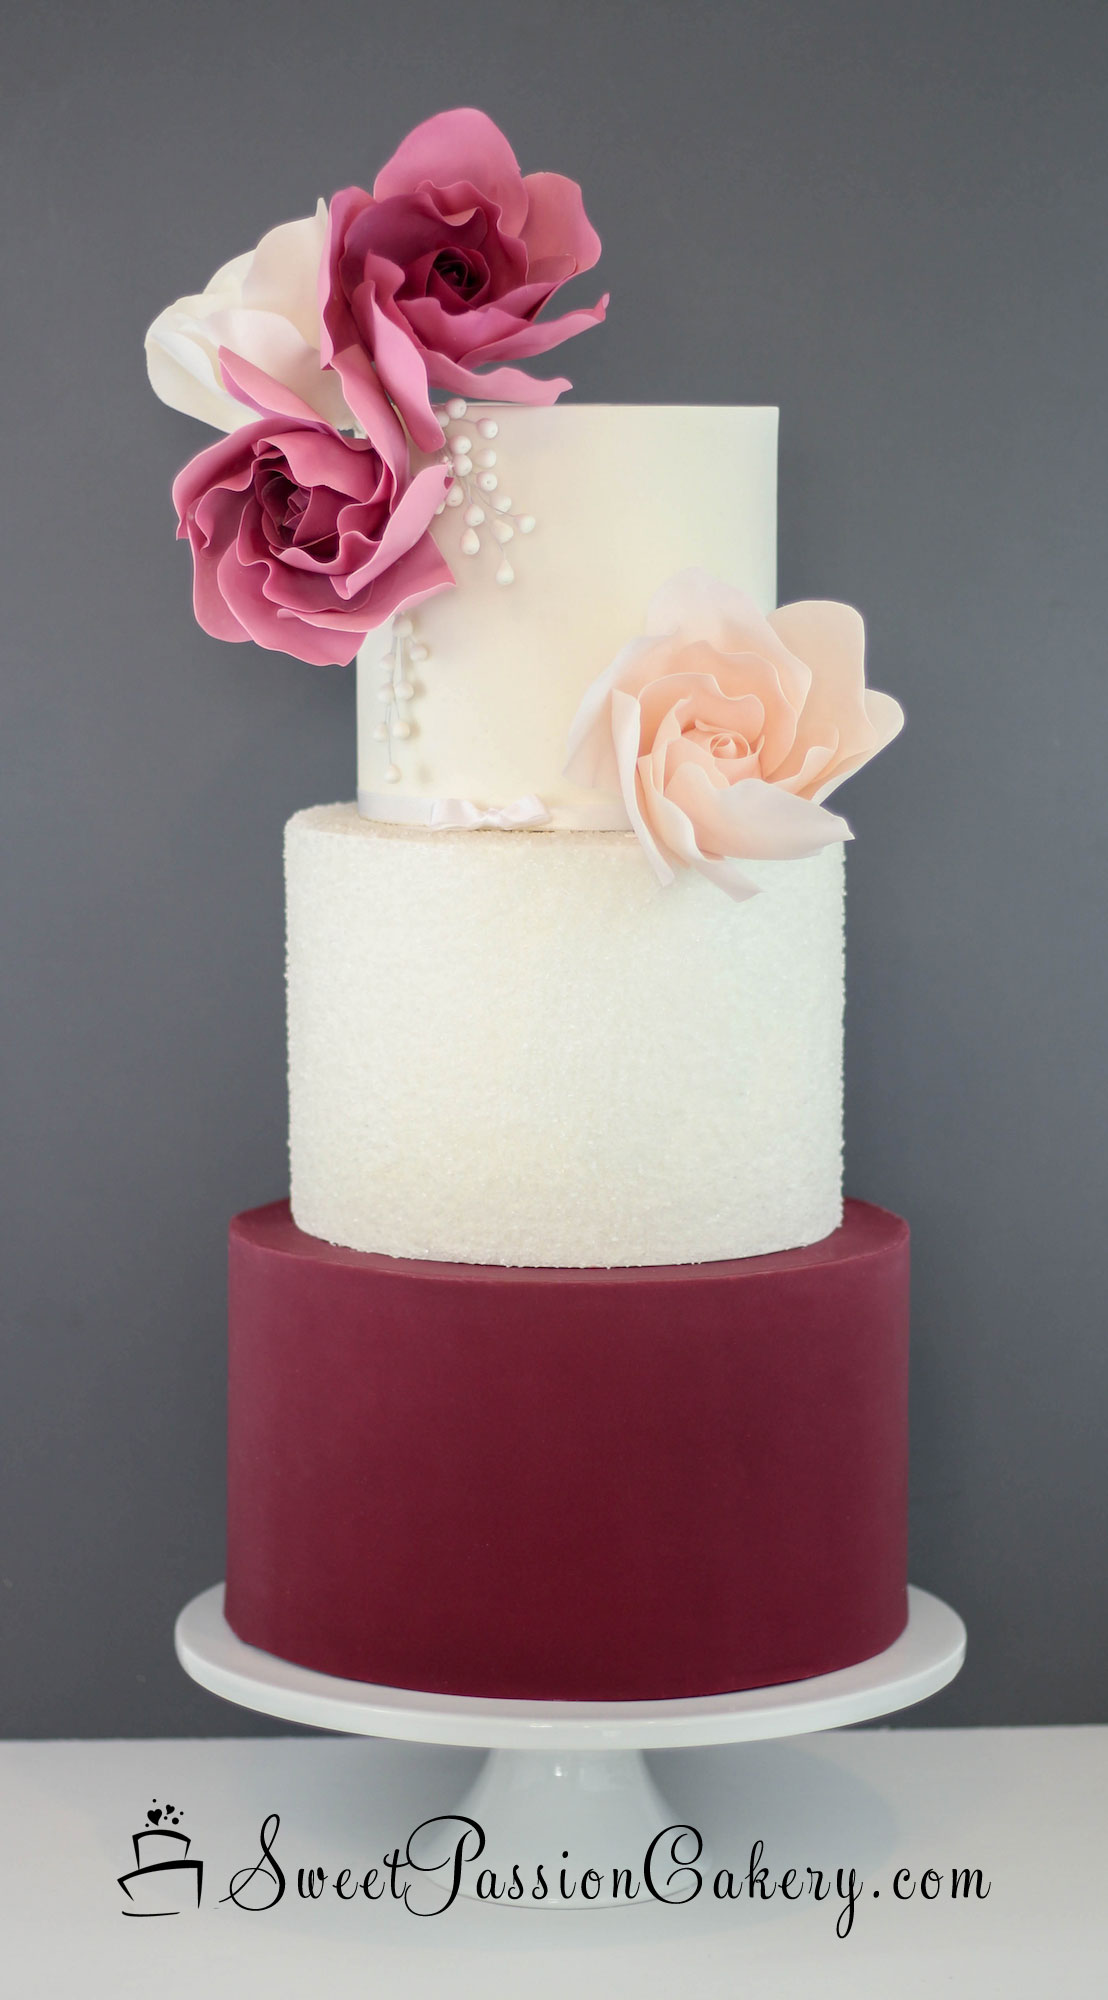 Burgundy & Blush wedding cake